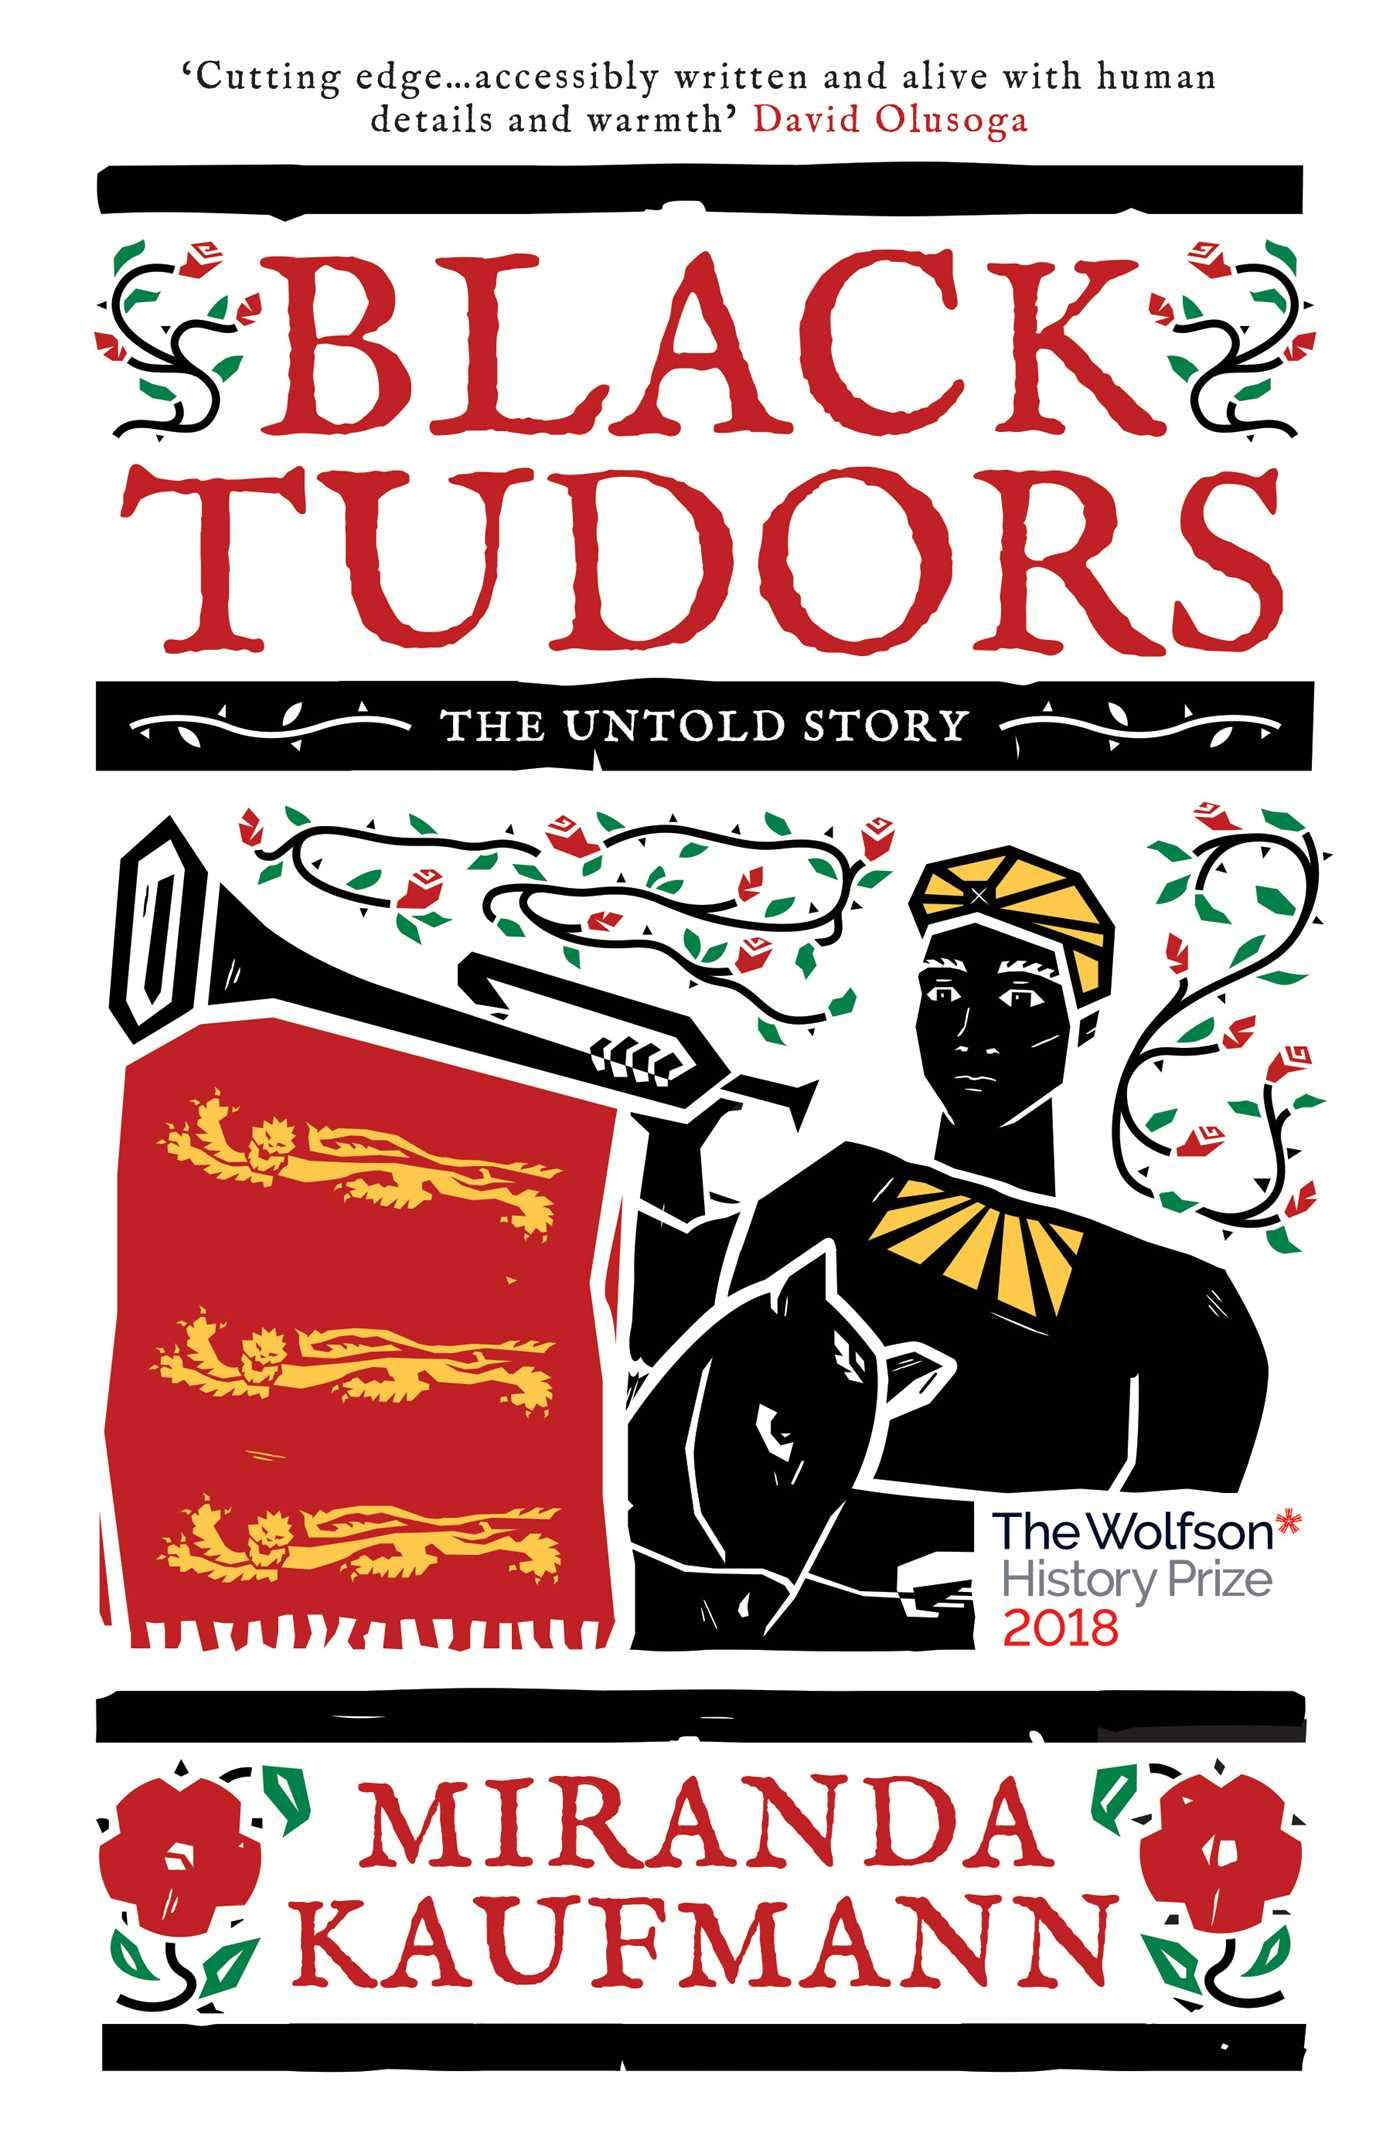 Black Tudors: The Untold Story: Amazon.co.uk: Kaufmann, Miranda:  9781786071842: Books